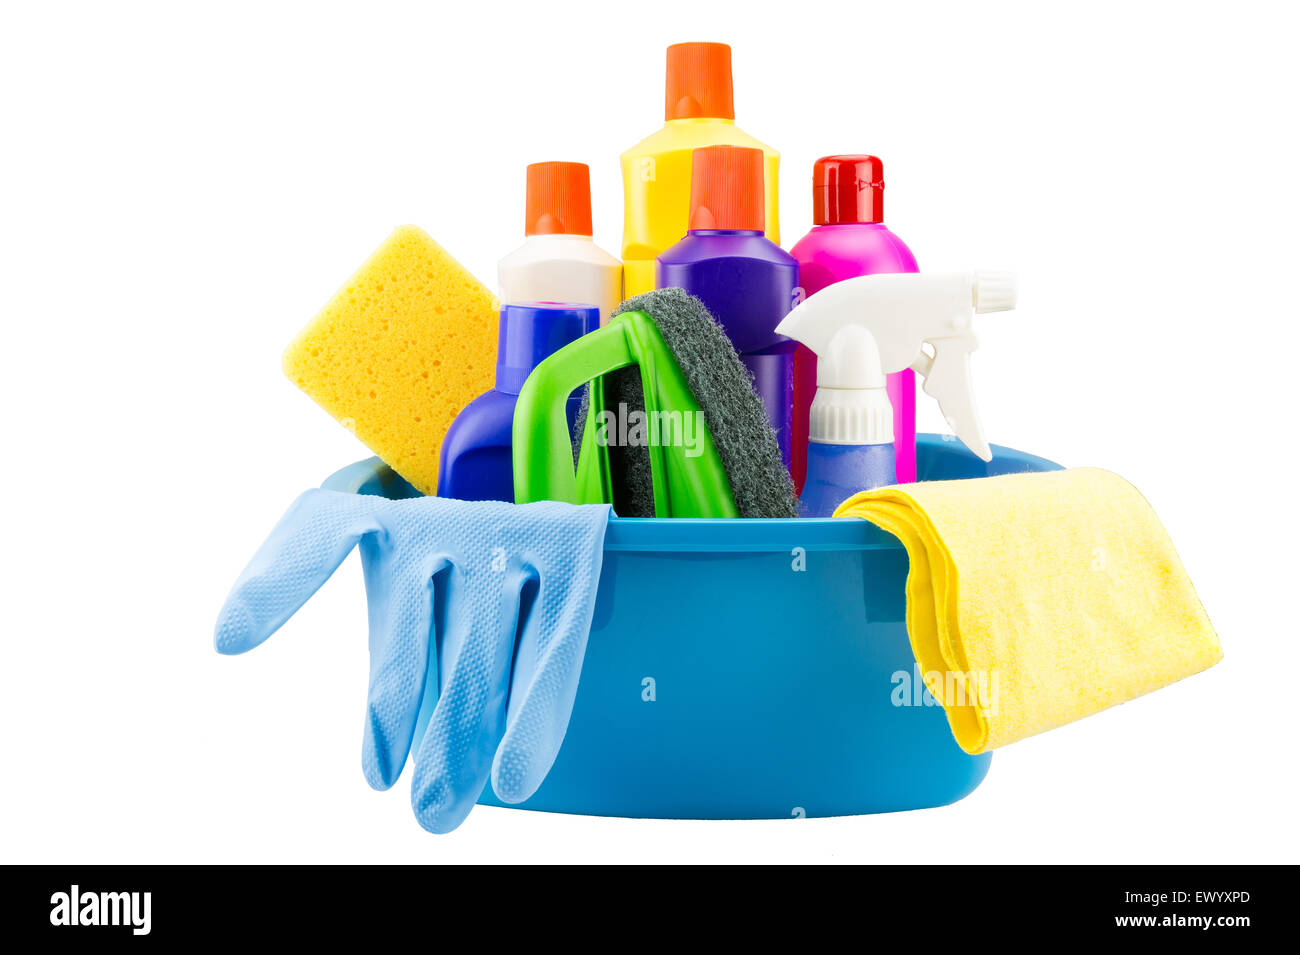 Cleaning tools in blue bucket on white background (Isolated) - Stock Image